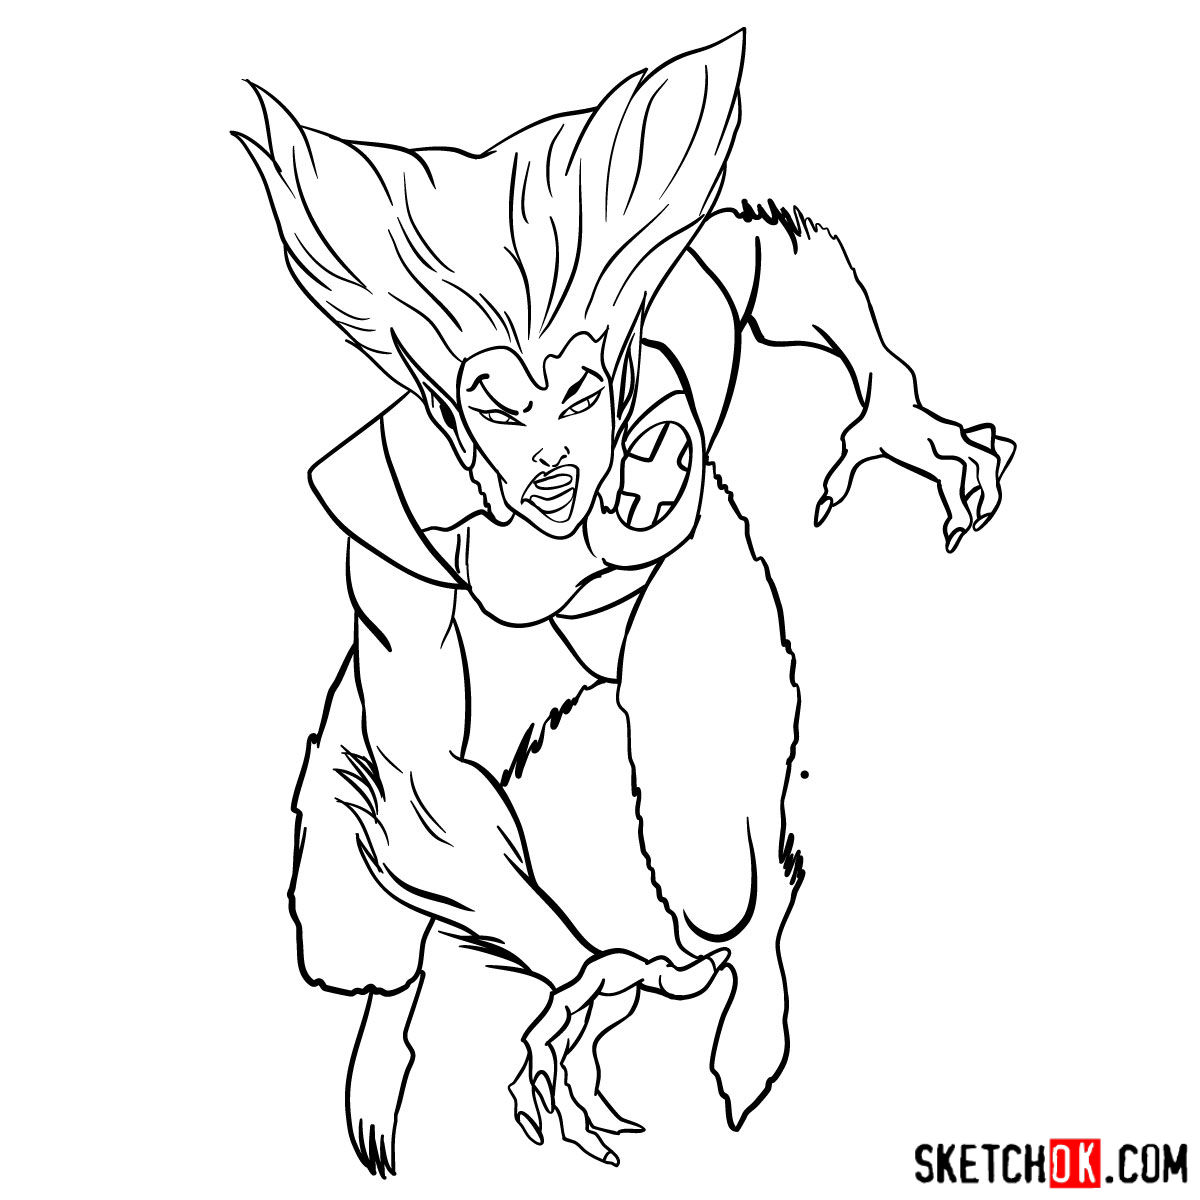 How to draw Wolfsbane, a mutant from X-Men series - step 13